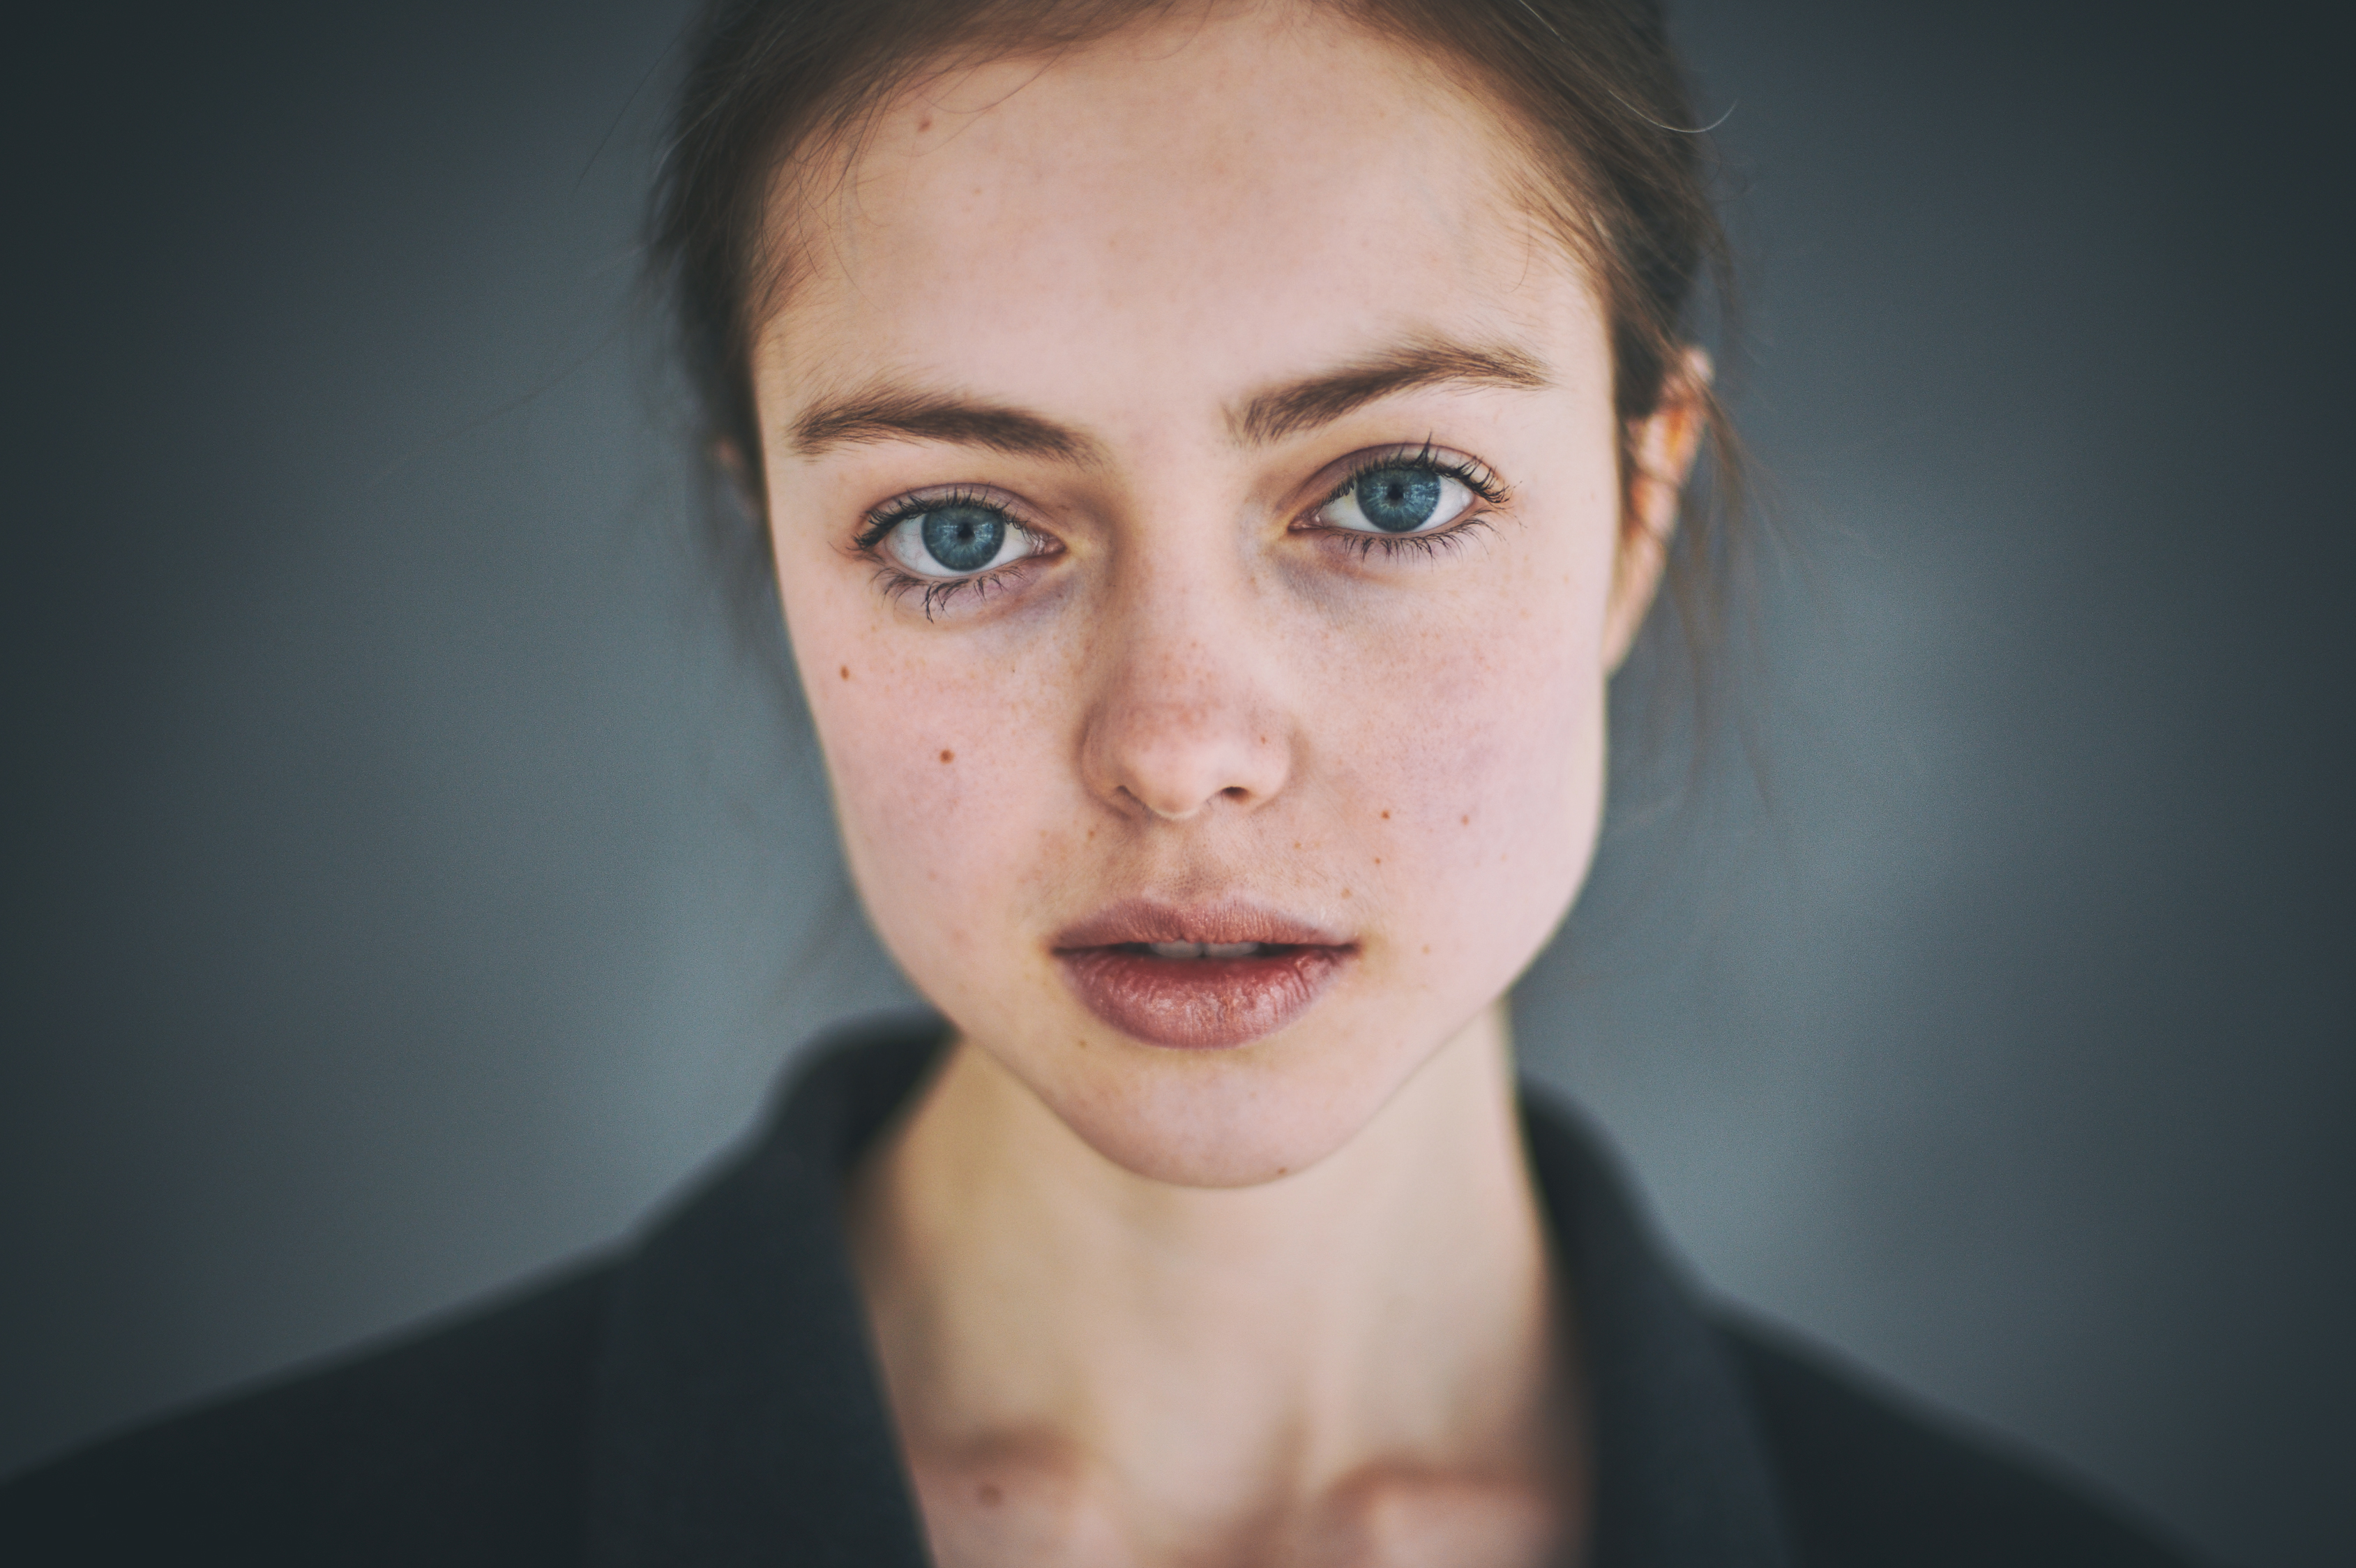 How to Improve Your Portraits in Just 5 Minutes image